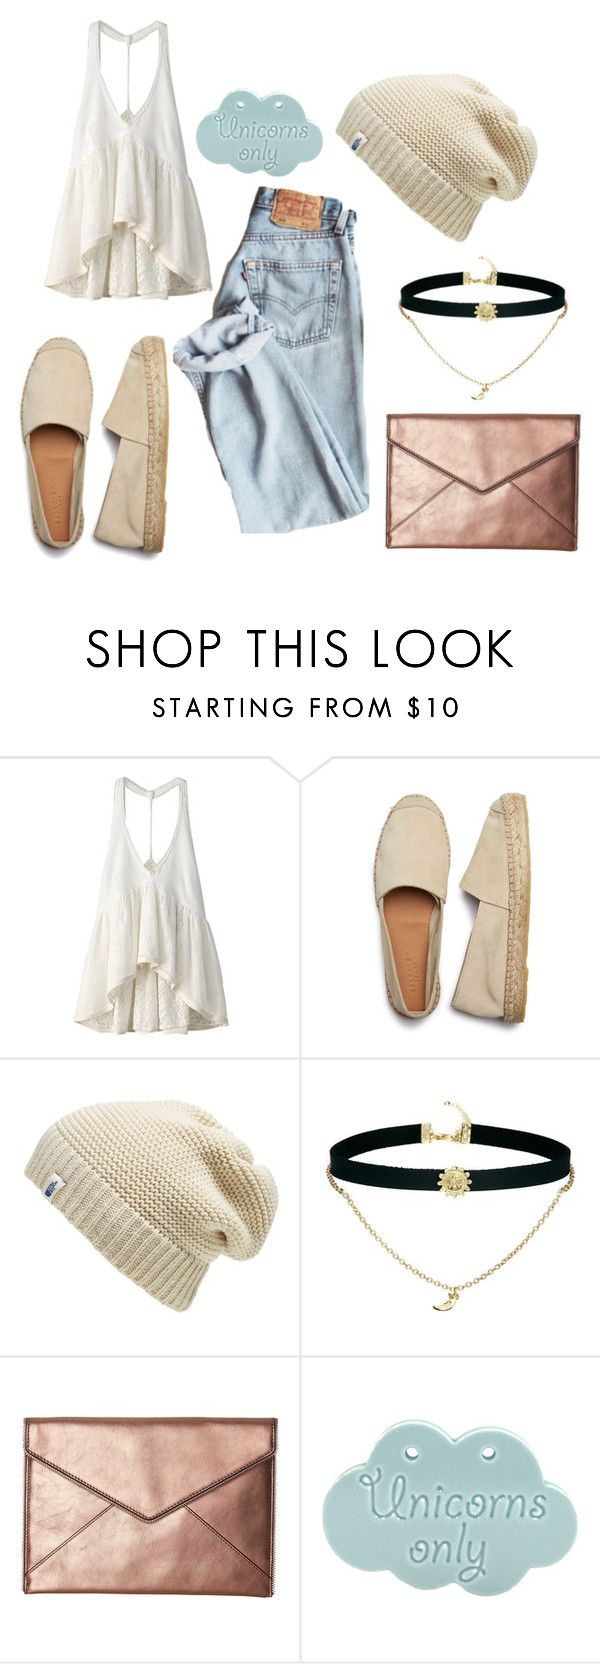 """""""Untitled #1317"""" by dani-gracik ❤ liked on Polyvore featuring OneTeaspoon, The North Face, ASOS and Rebecca Minkoff"""